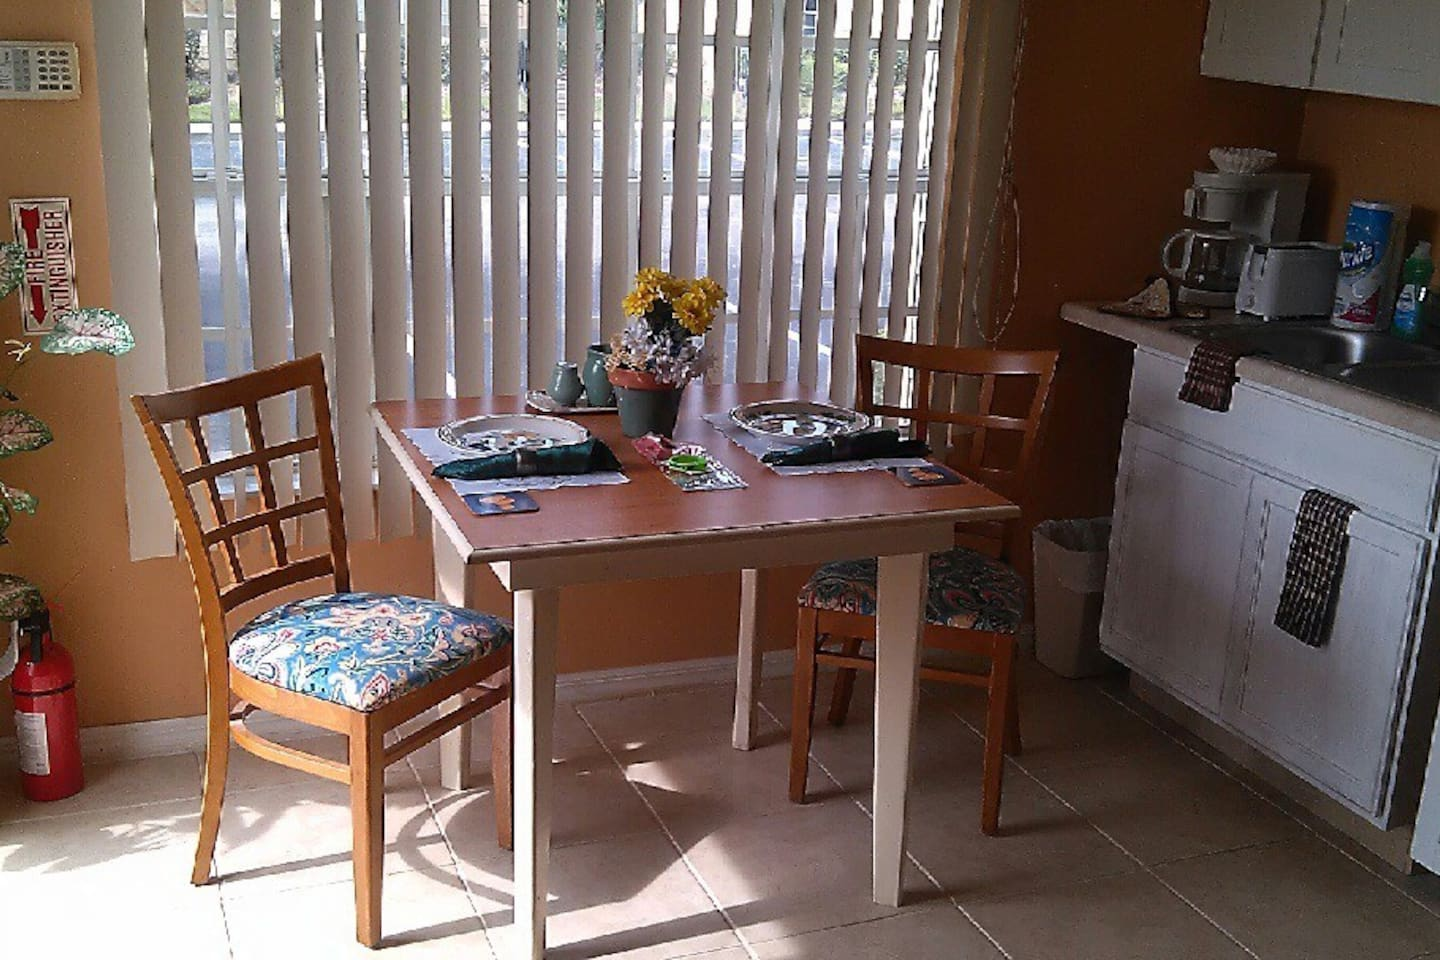 Newly Updated Kitchenette and Dining area with ceramic floor